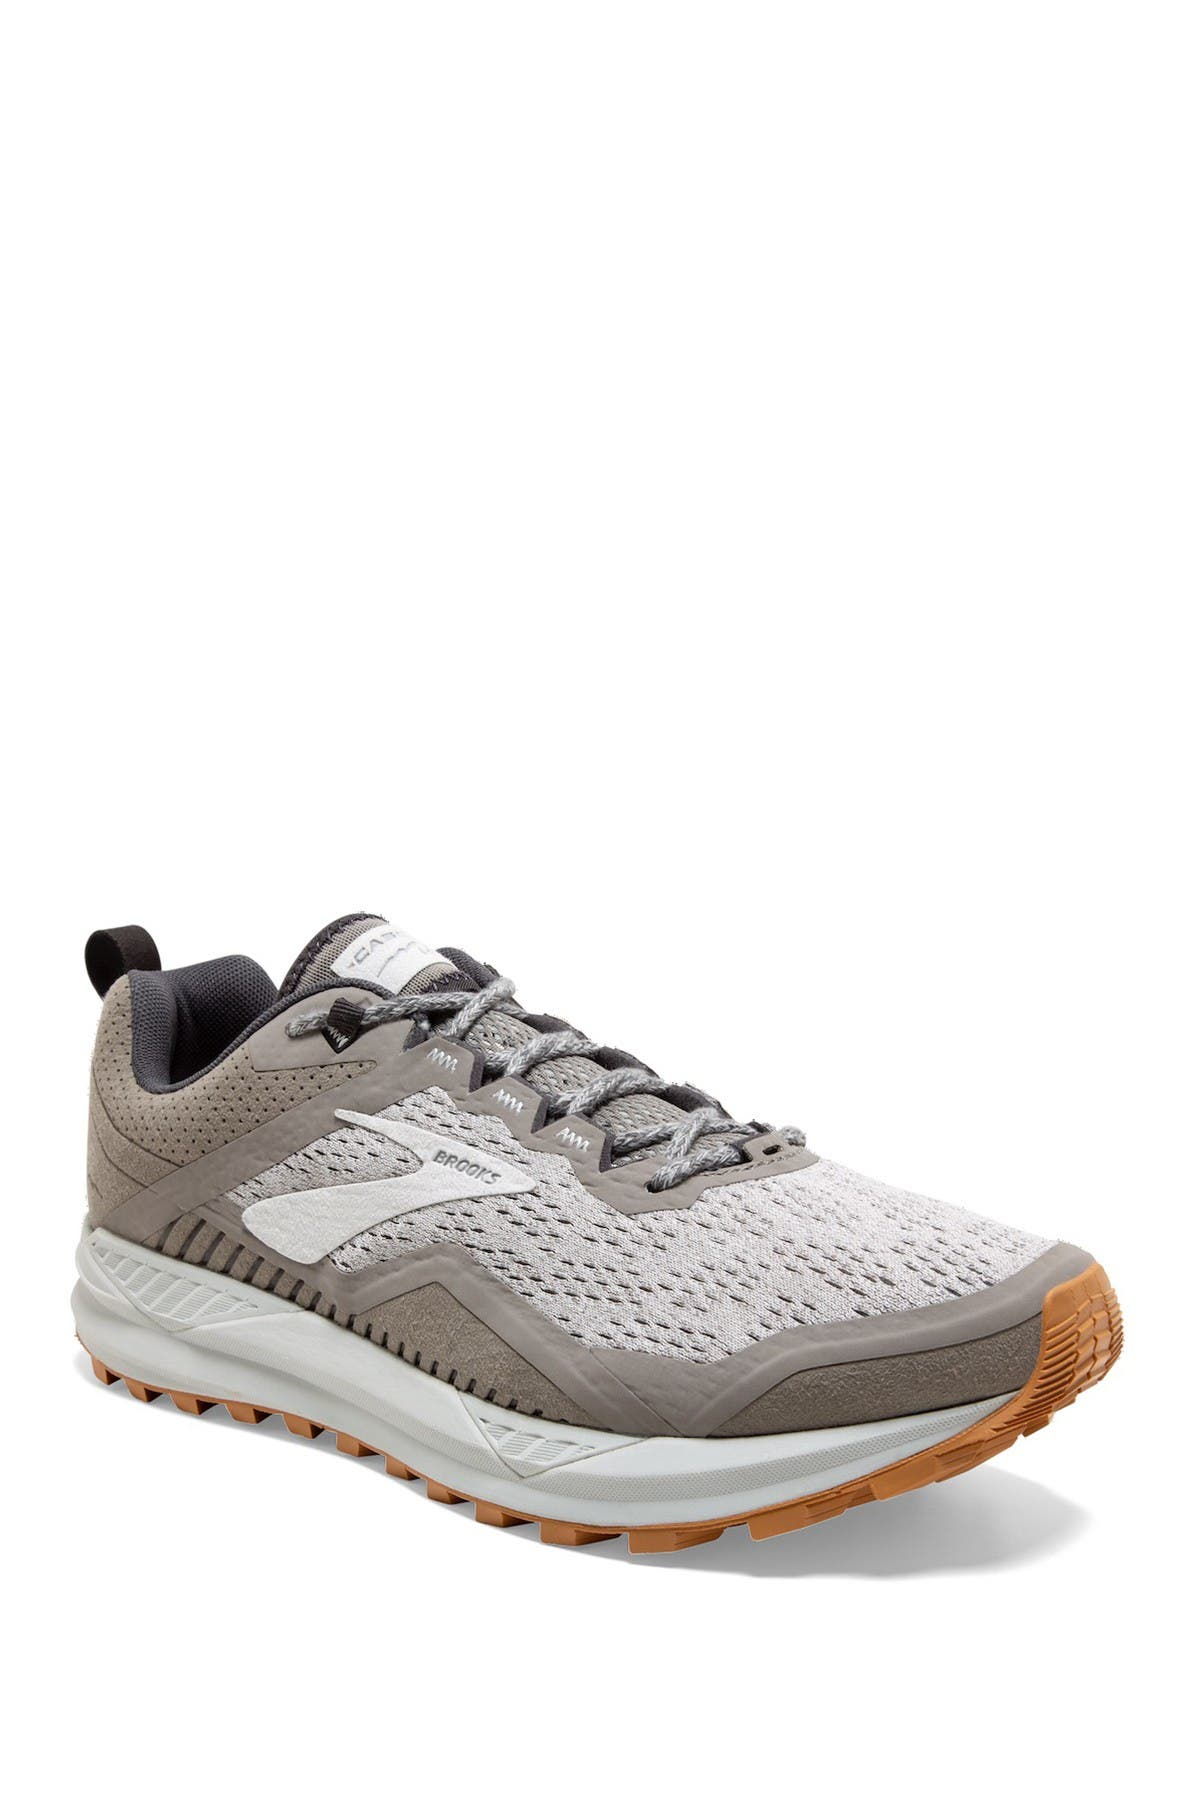 Image of Brooks Cascadia 14 Trail Running Sneaker - Wide Width Available